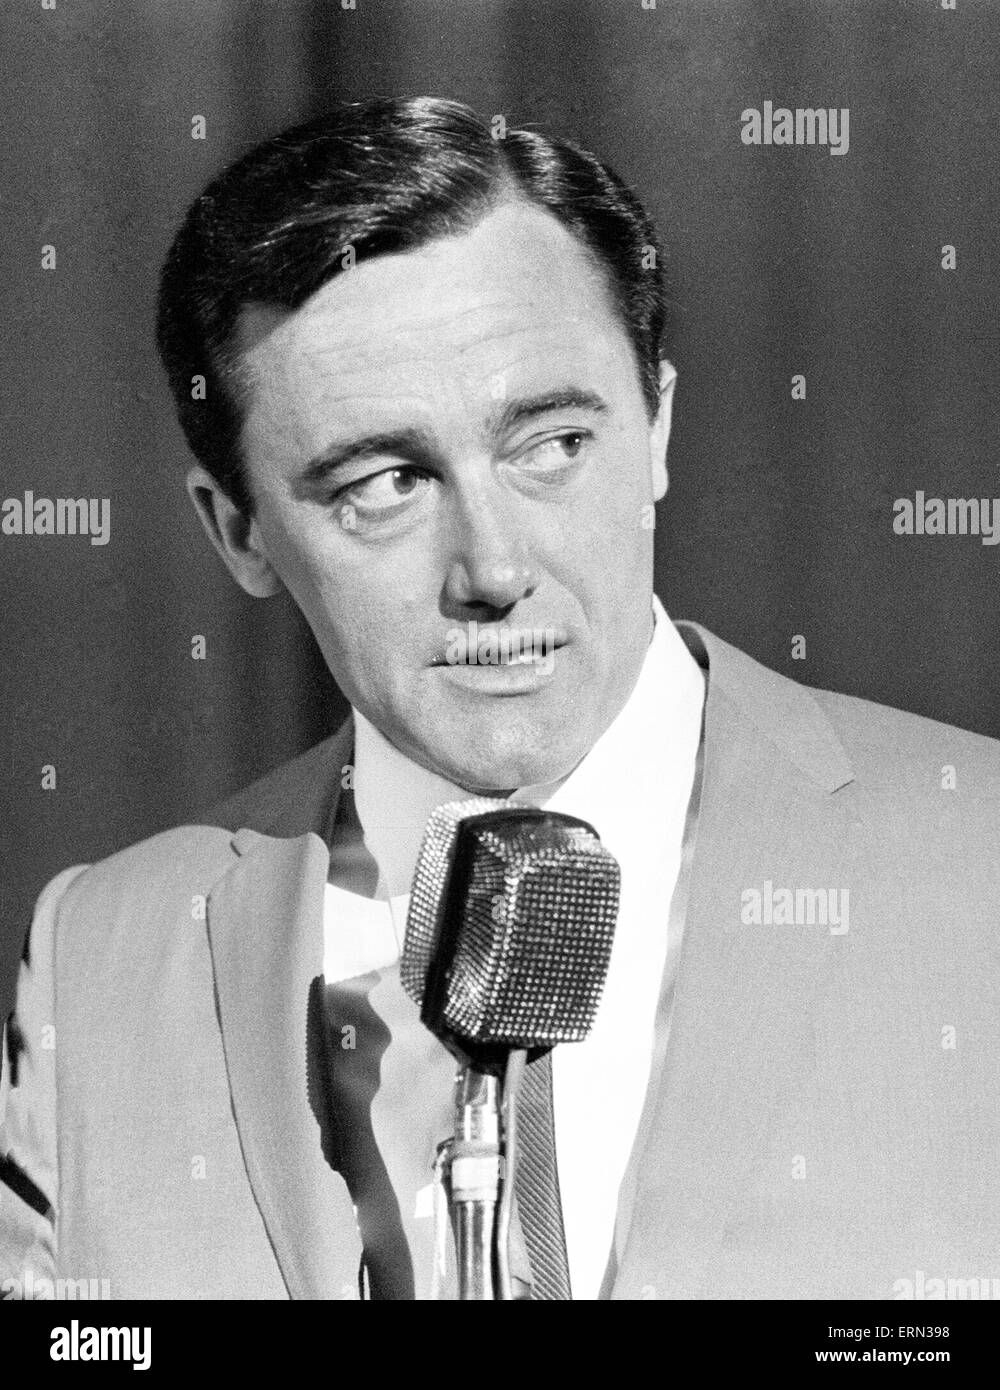 Robert Vaughn, actor who plays the role of secret agent Napoleon Solo in NBC show The Man from U.N.C.L.E., pictured - Stock Image